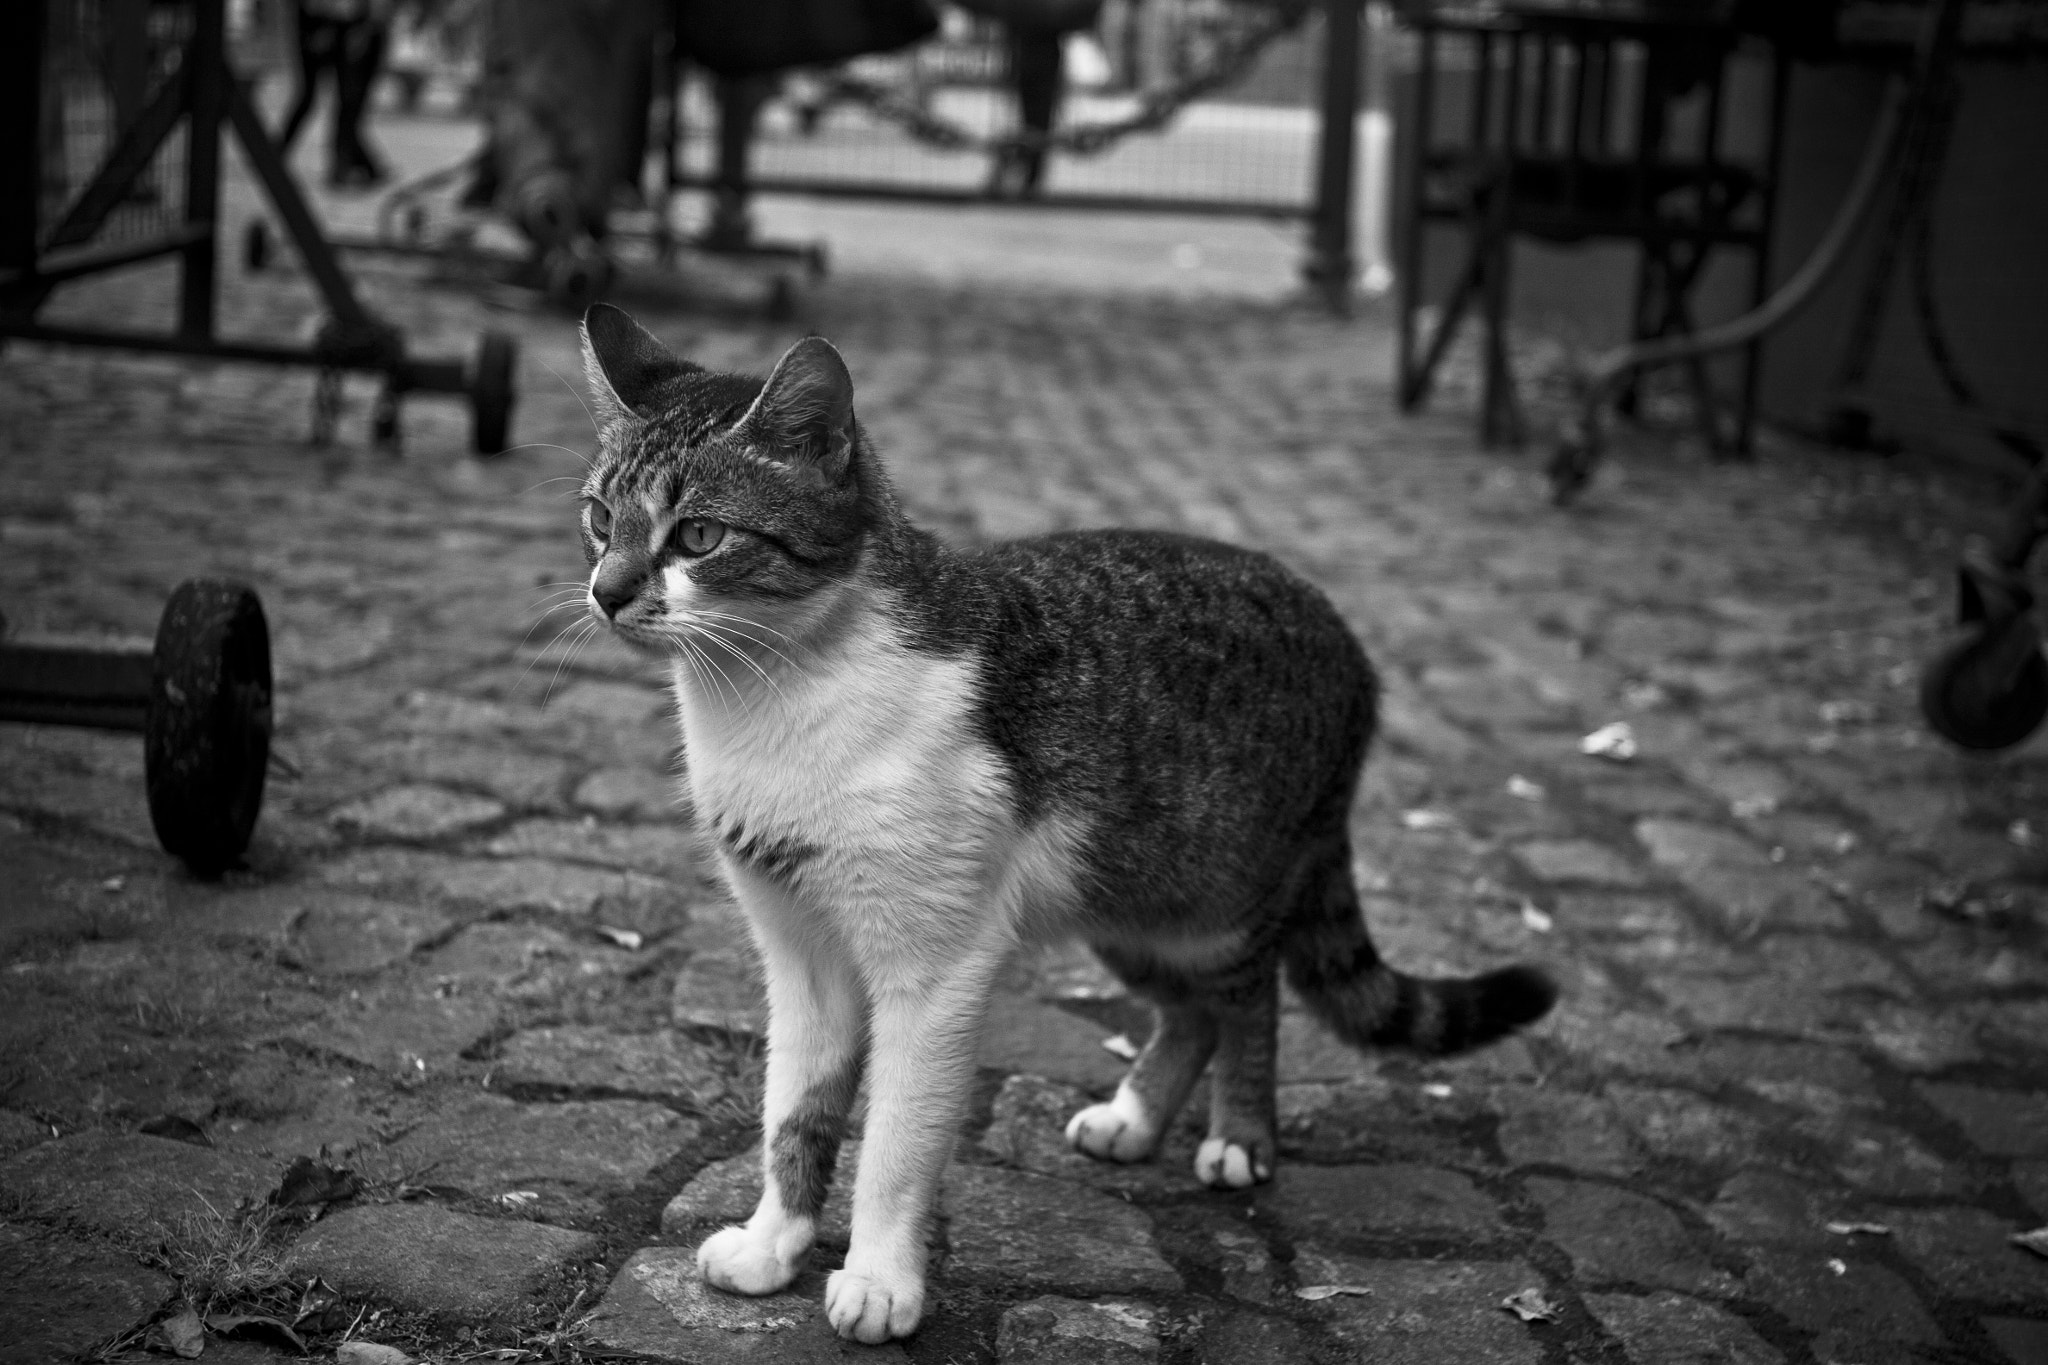 Photograph Kitty by Scot Steele on 500px